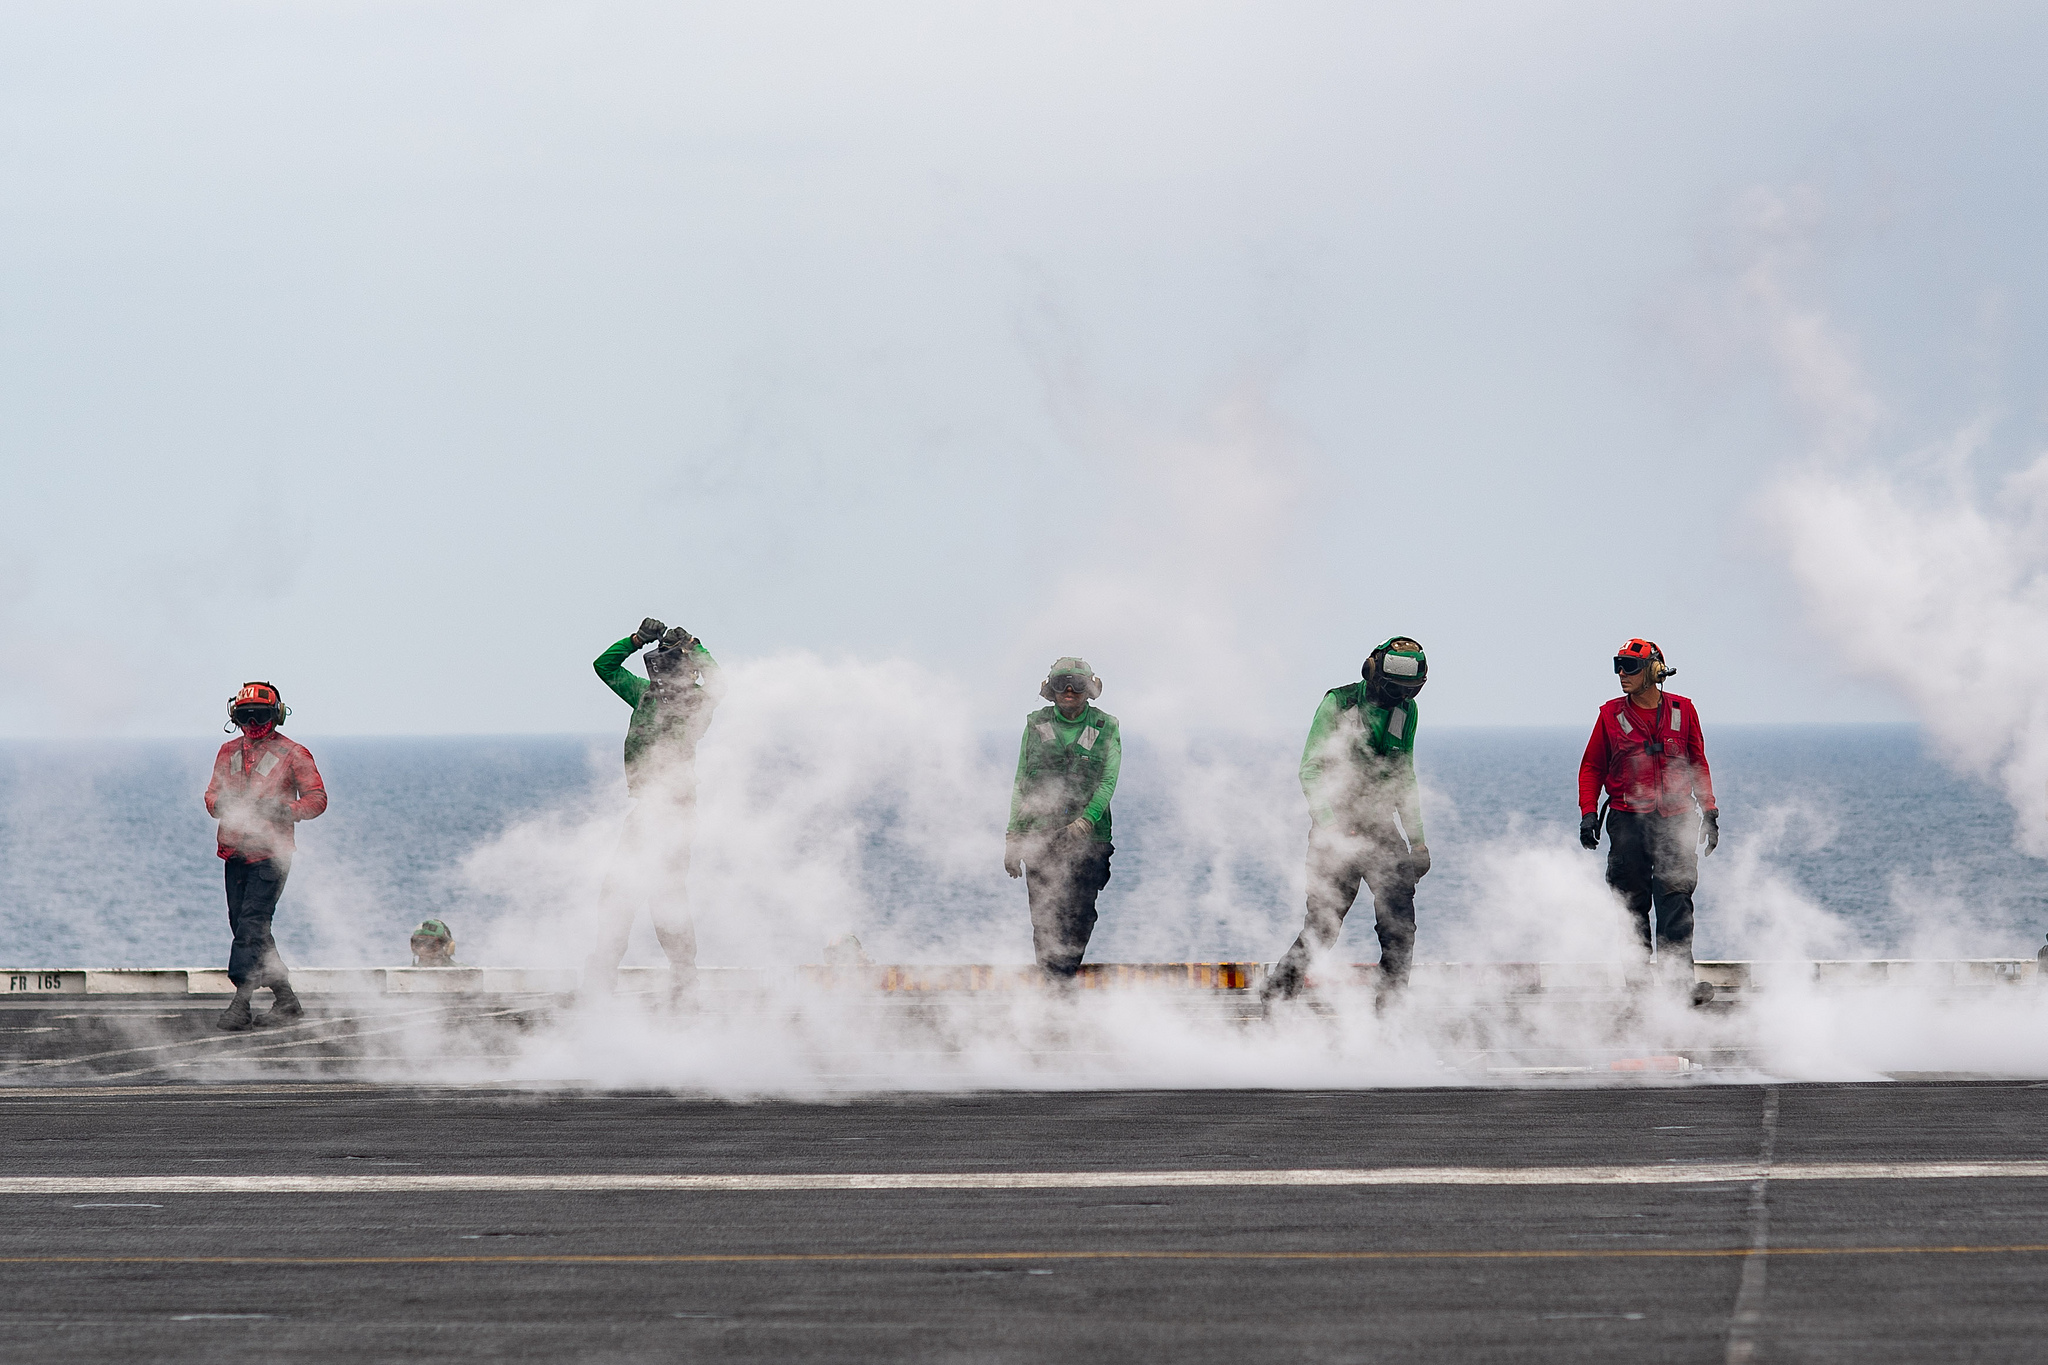 Sailors reset a steam-powered catapult on the flight deck of the aircraft carrier USS John C. Stennis (CVN 74) on March 23, 2019, in the Arabian Gulf. (U.S. Navy photo by Mass Communication Specialist 3rd Class Grant G. Grady/Navy)